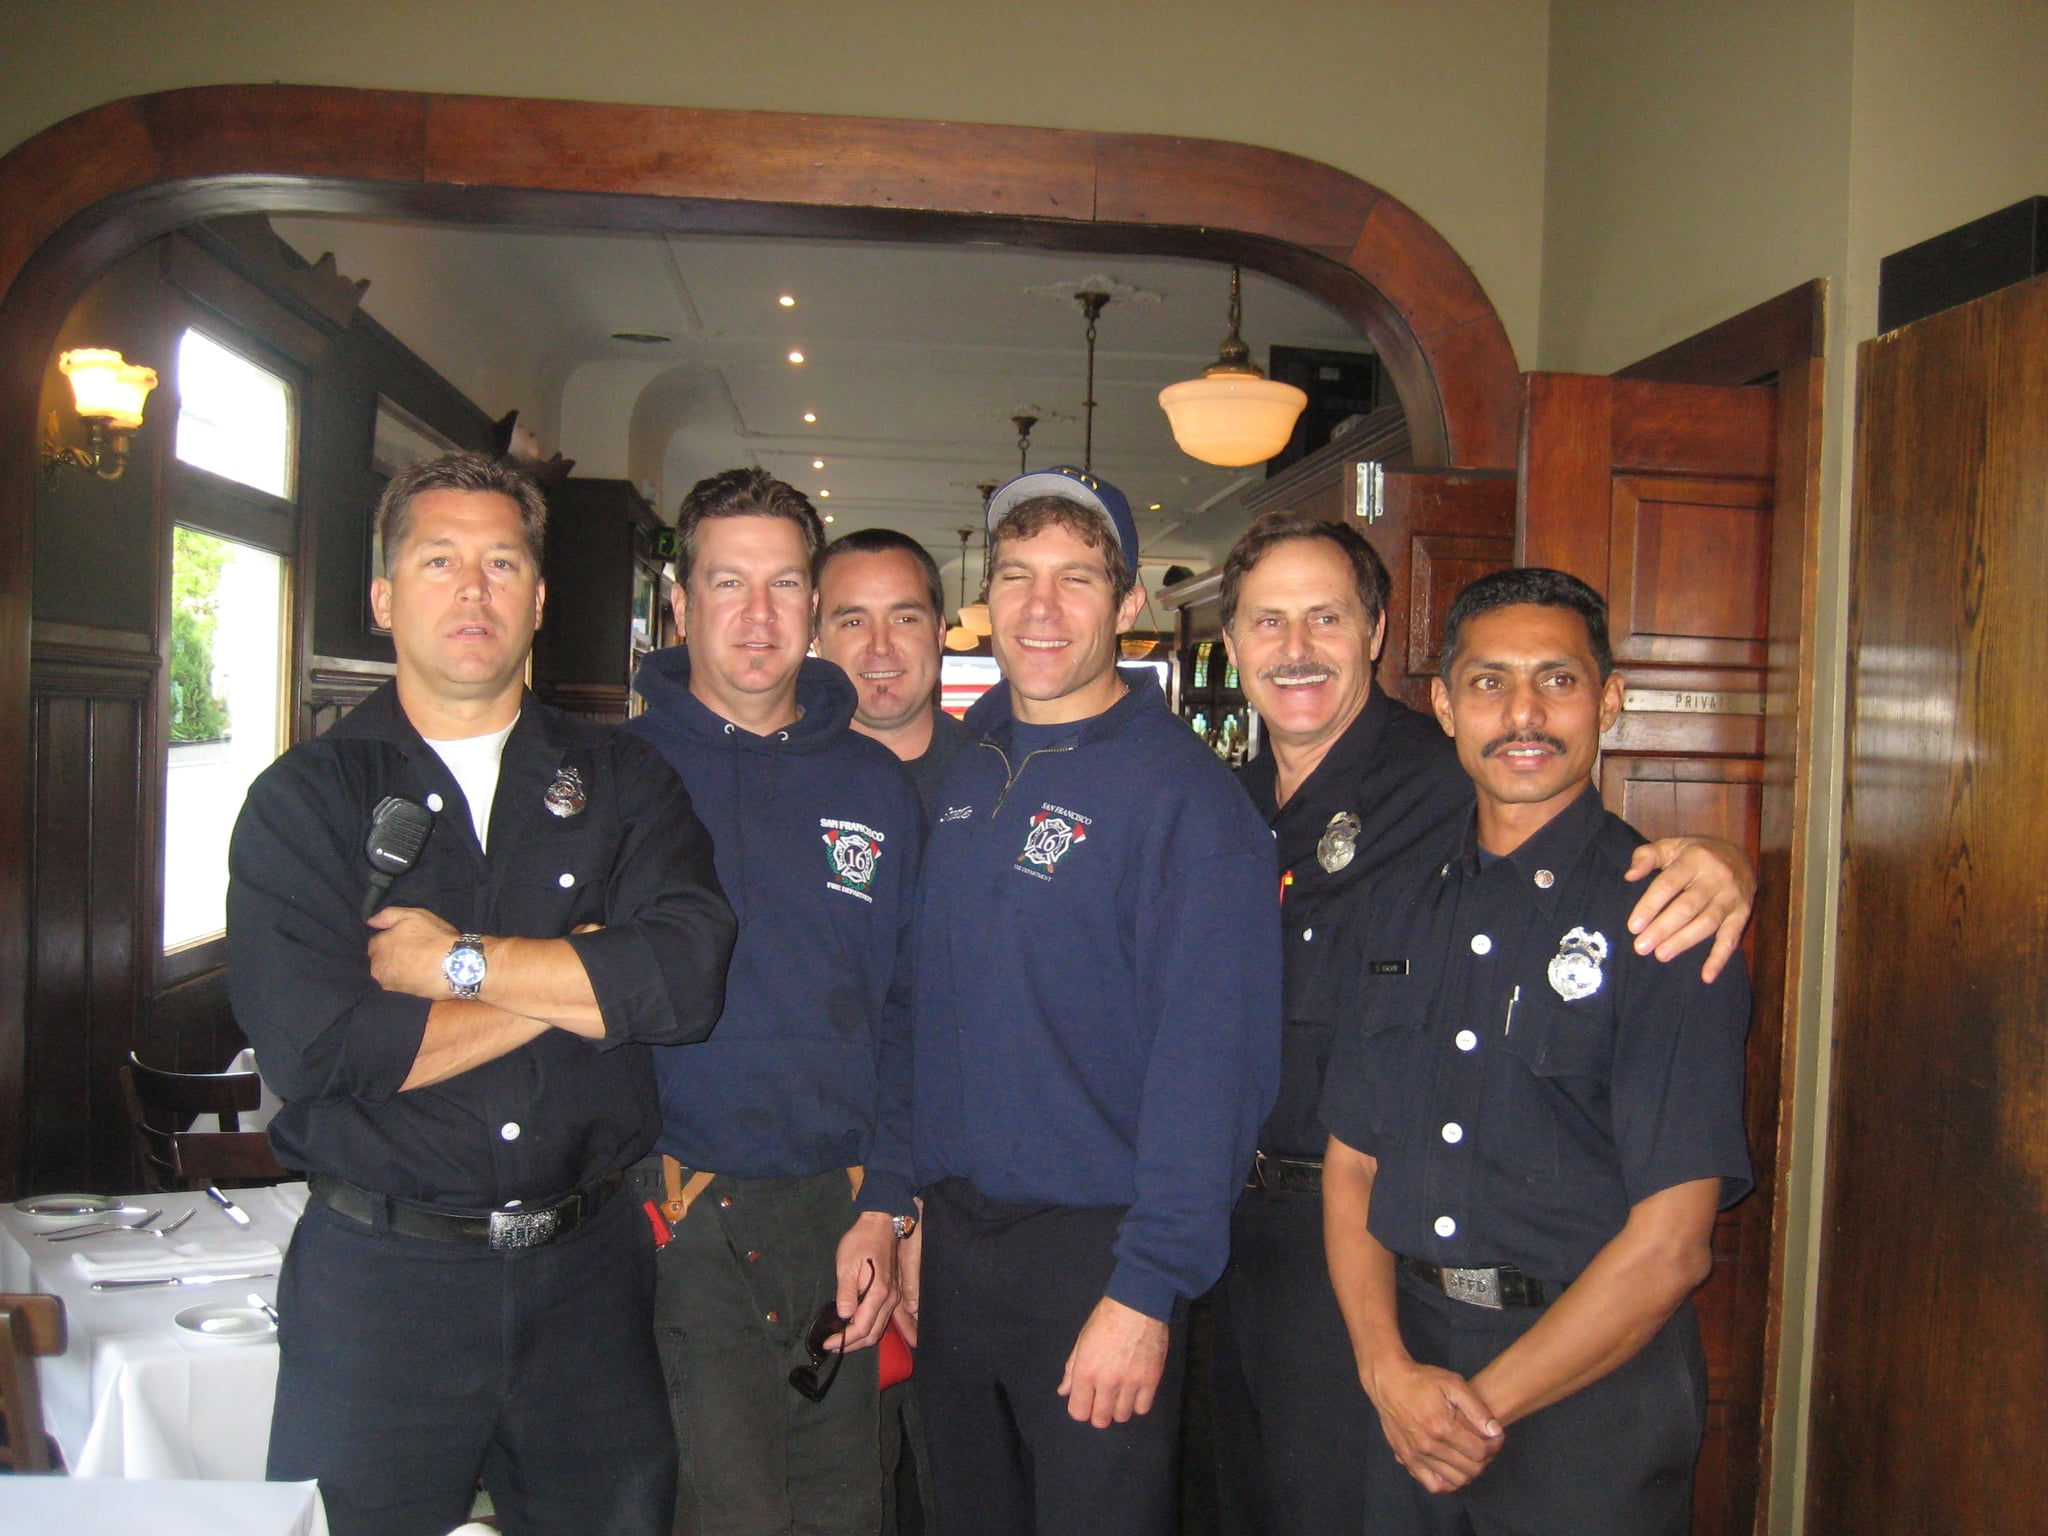 The firefighters of Station 16.